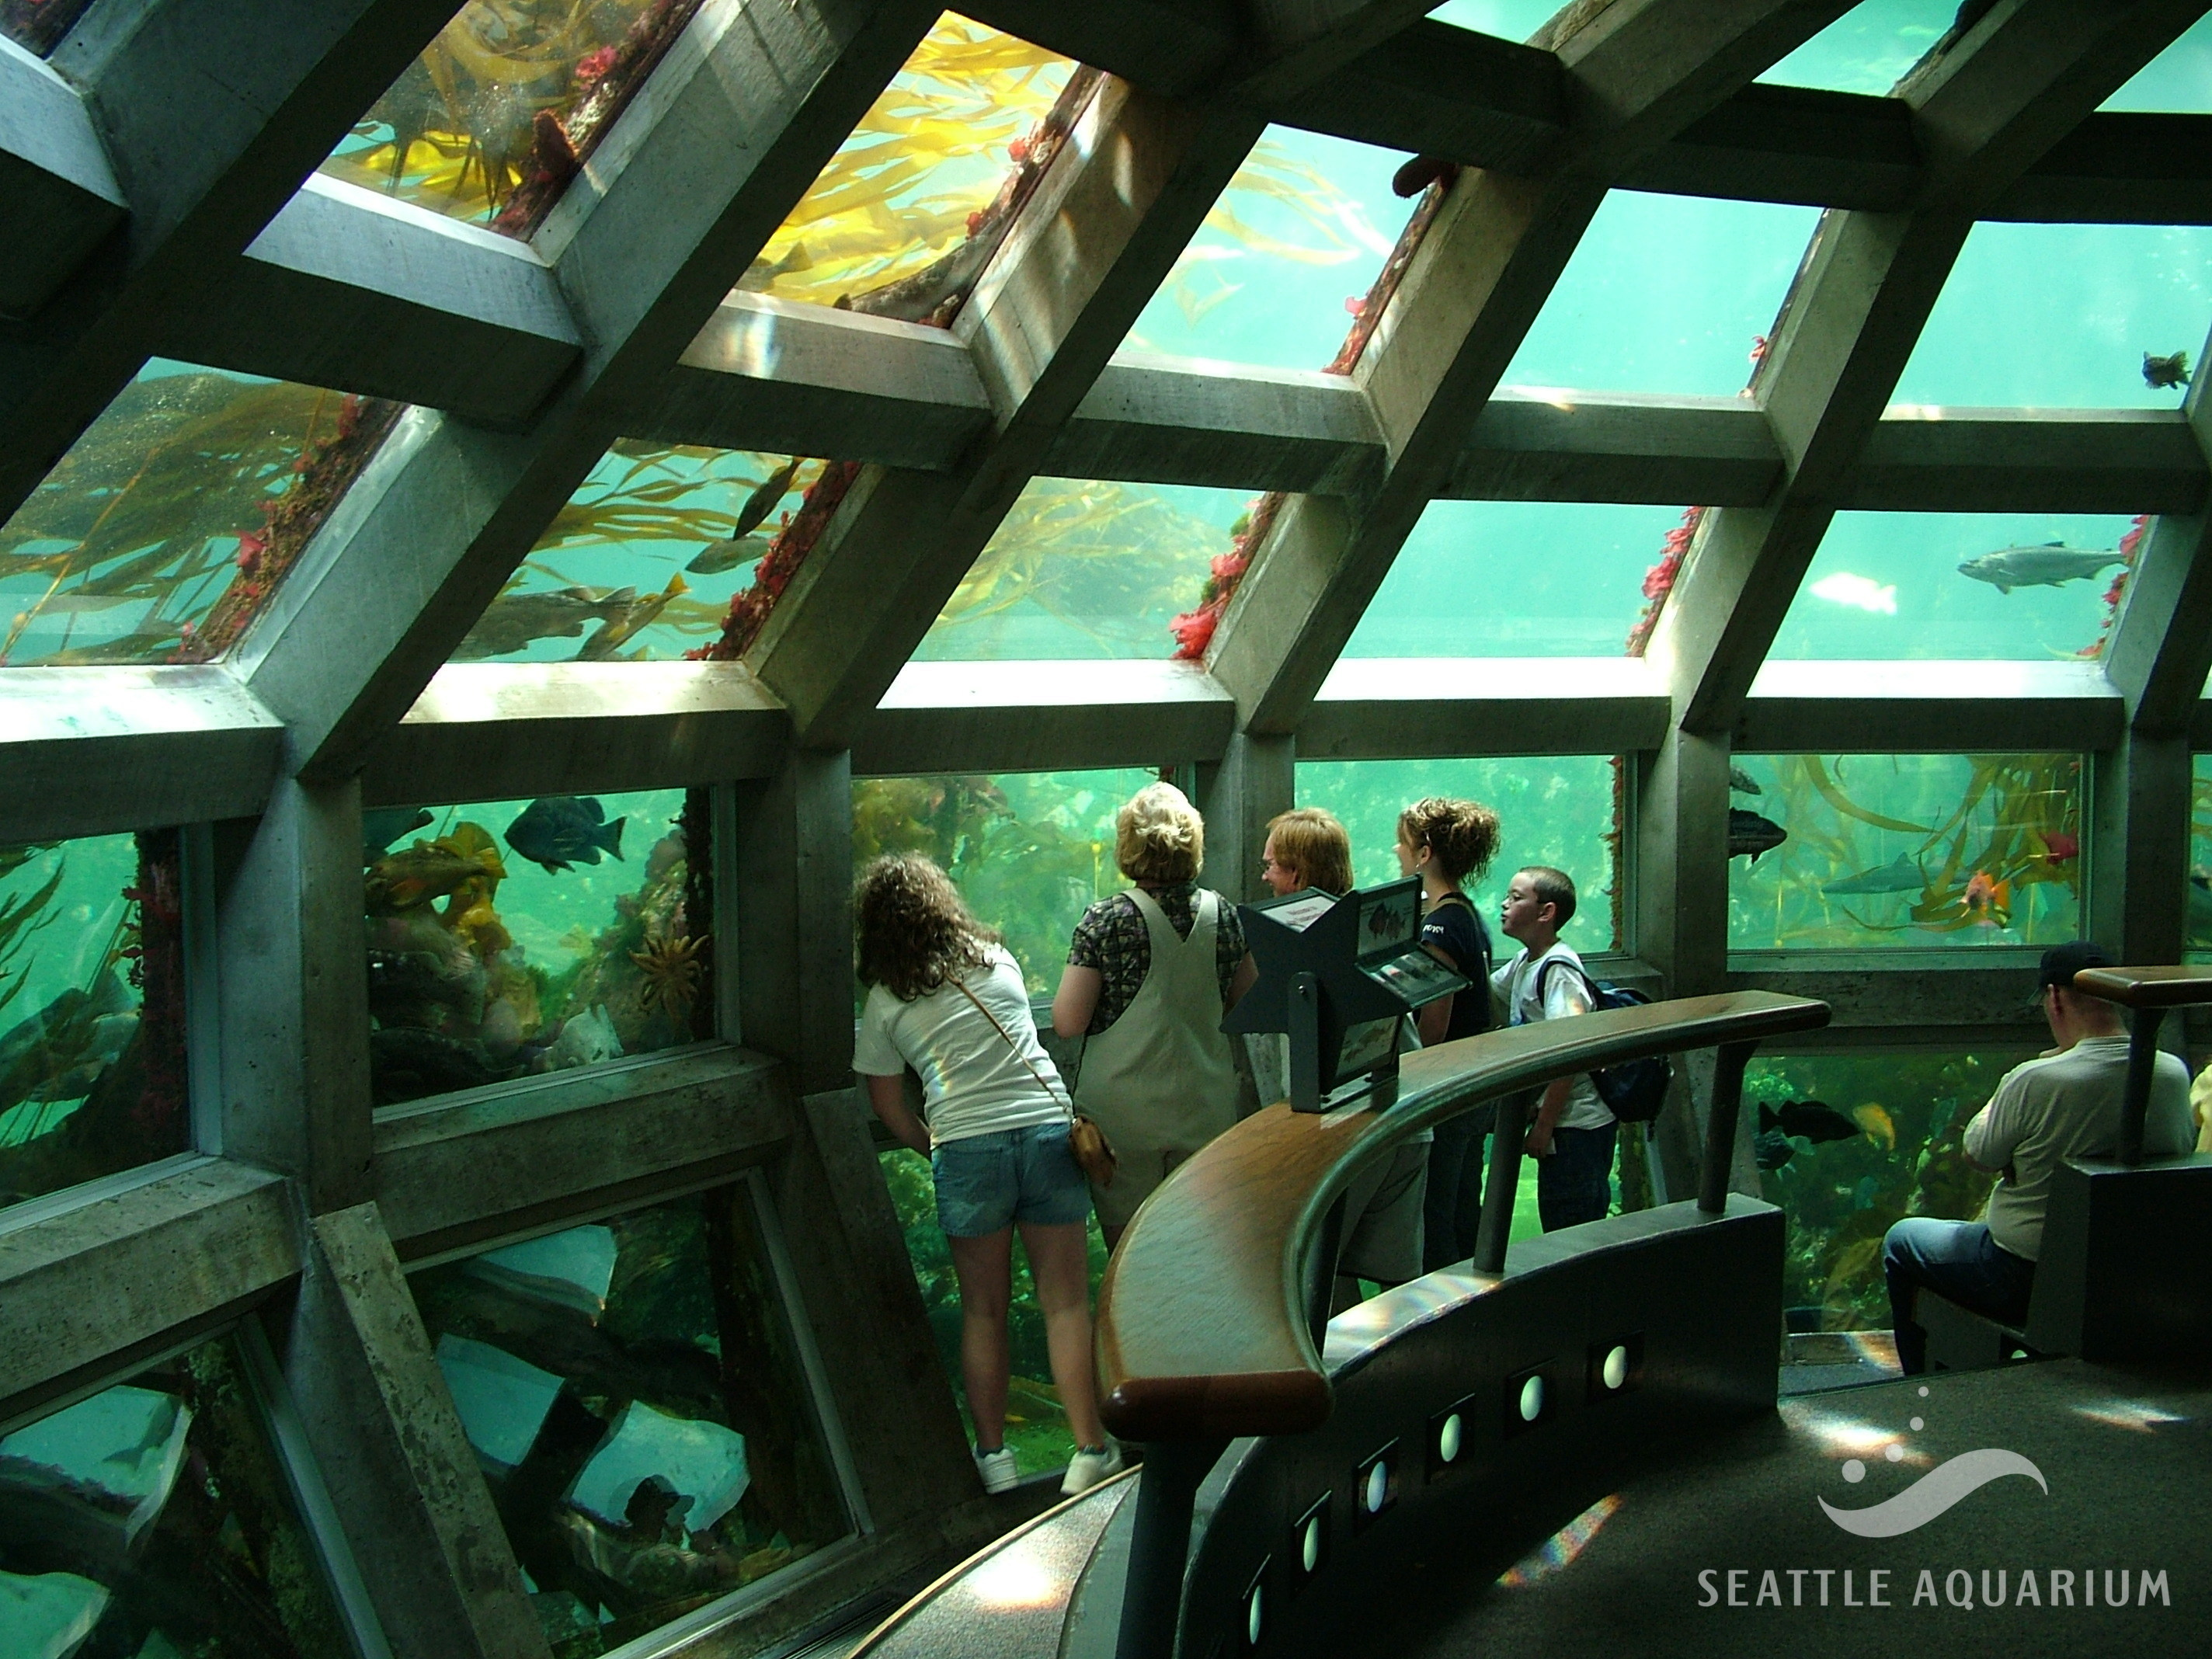 Seattle Aquarium's Underwater Dome exhibit. (Photo courtesy of Seattle Aquarium)